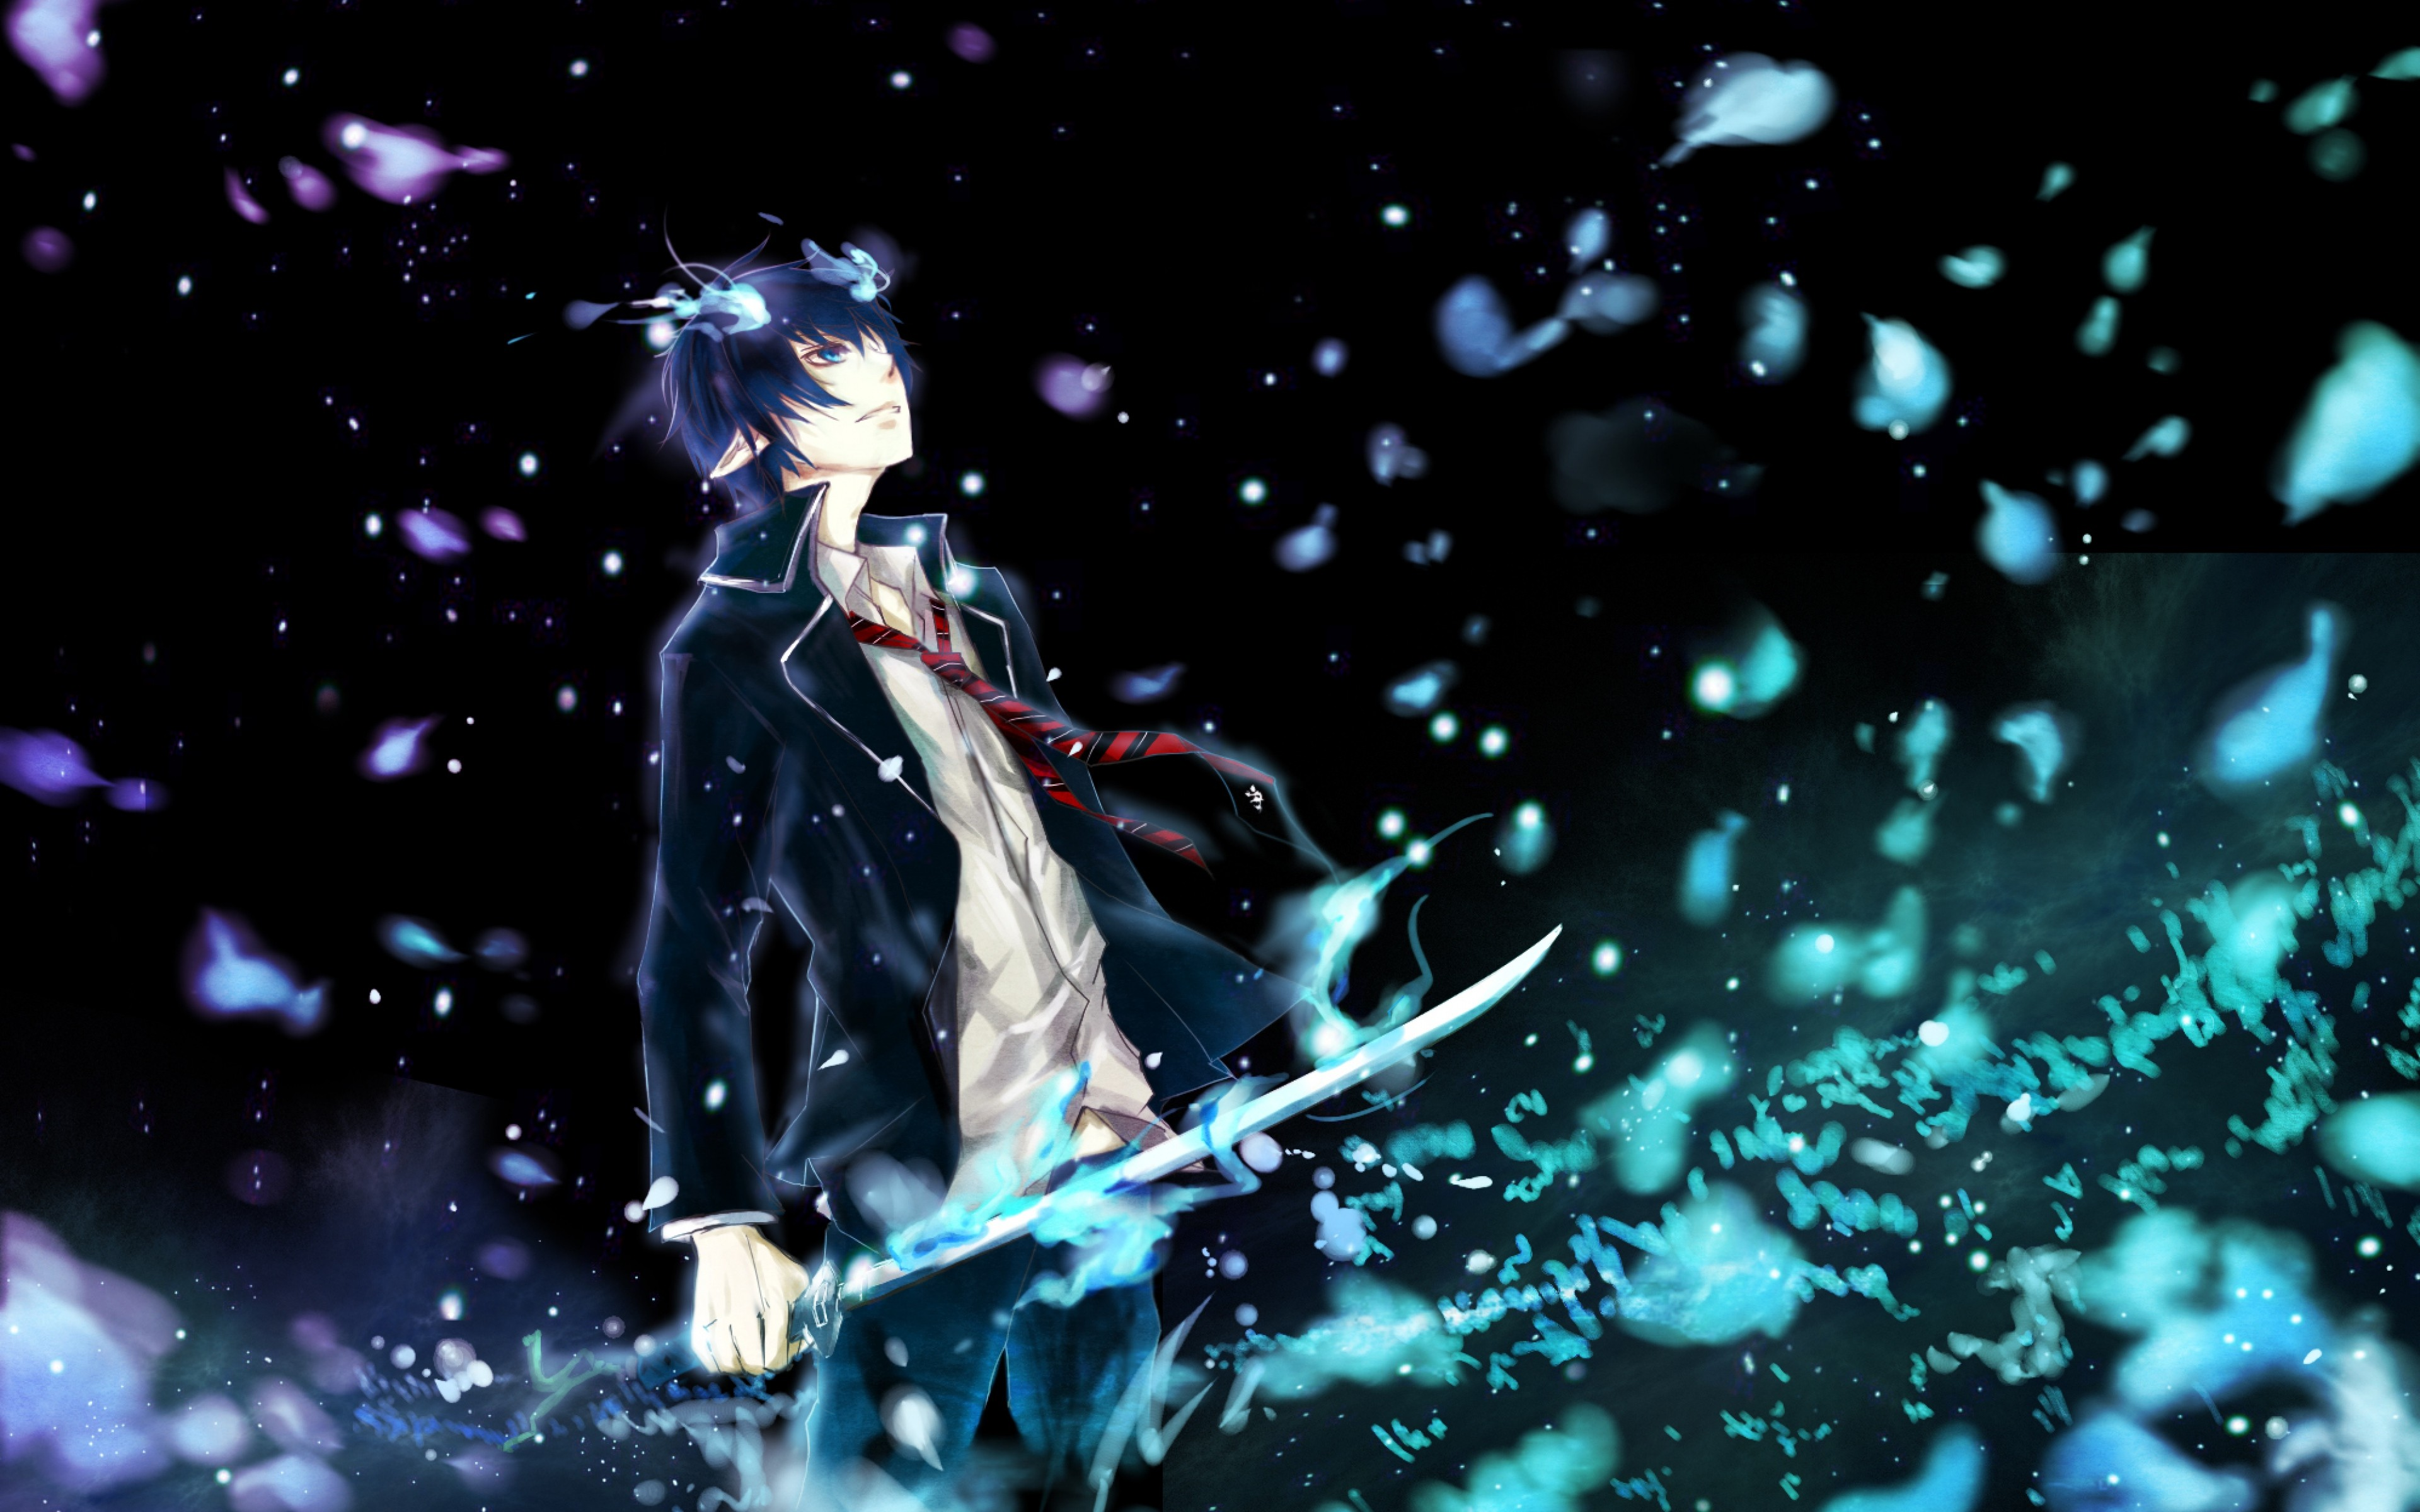 Blue Exorcist wallpaper ·① Download free amazing ...